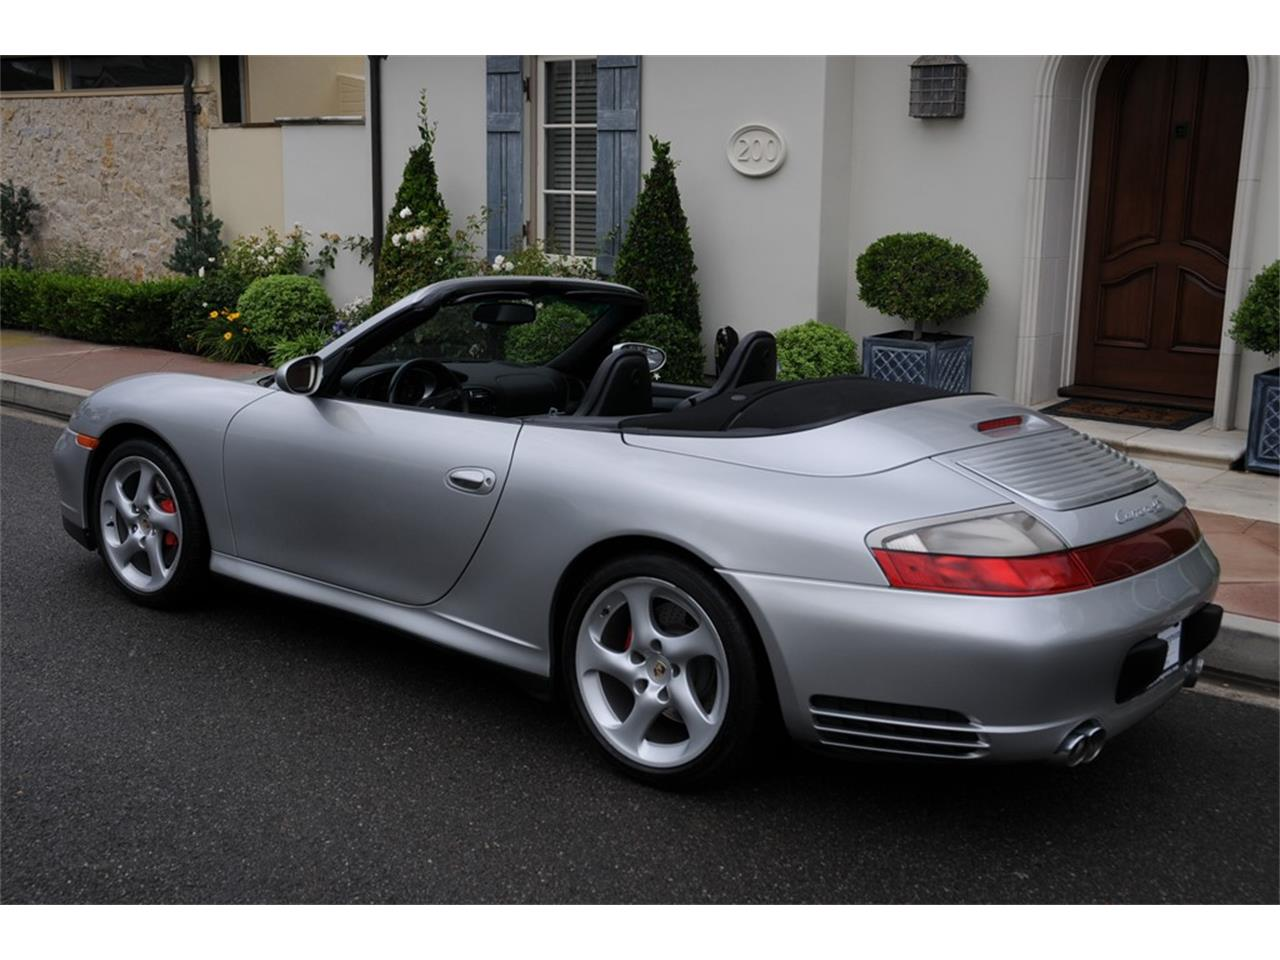 Large Picture of '04 911 Carrera 4S Cabriolet located in California - $32,990.00 Offered by Star European Inc. - QK9K